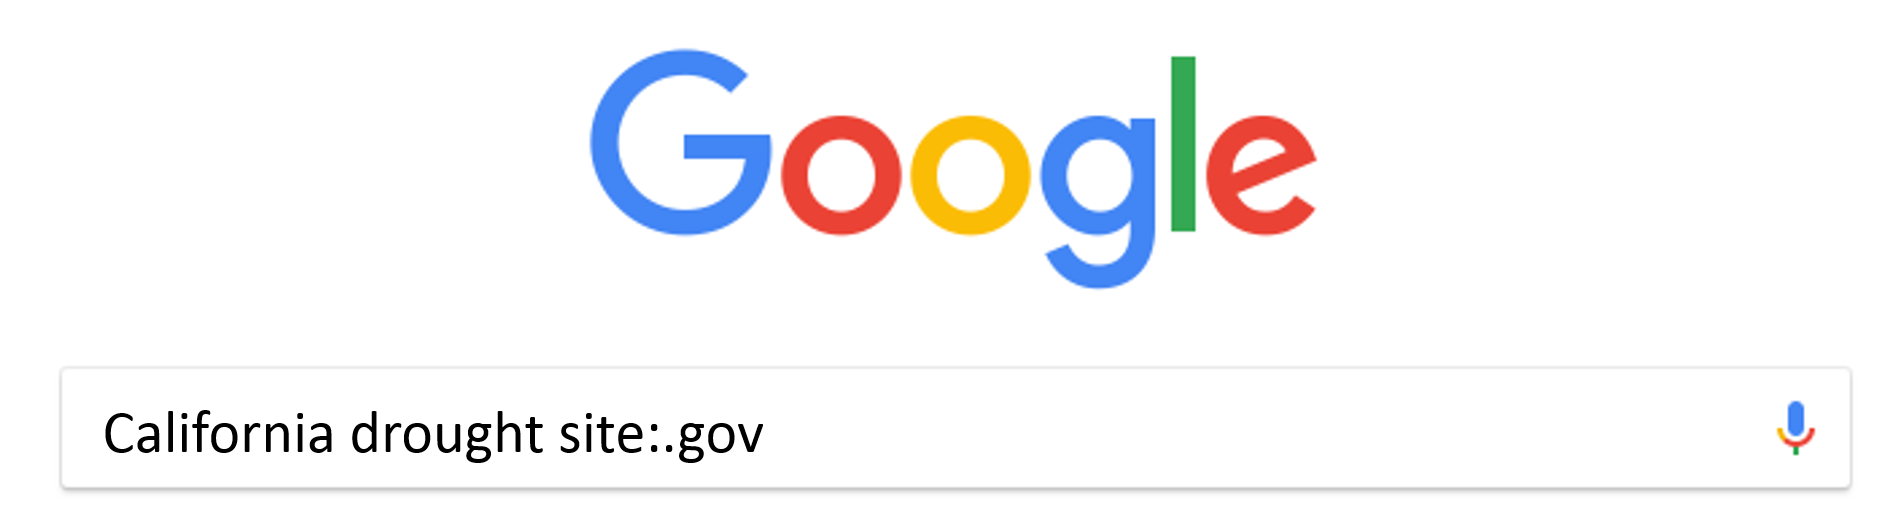 Google search using site:.gov to narrow searches to .gov websites.